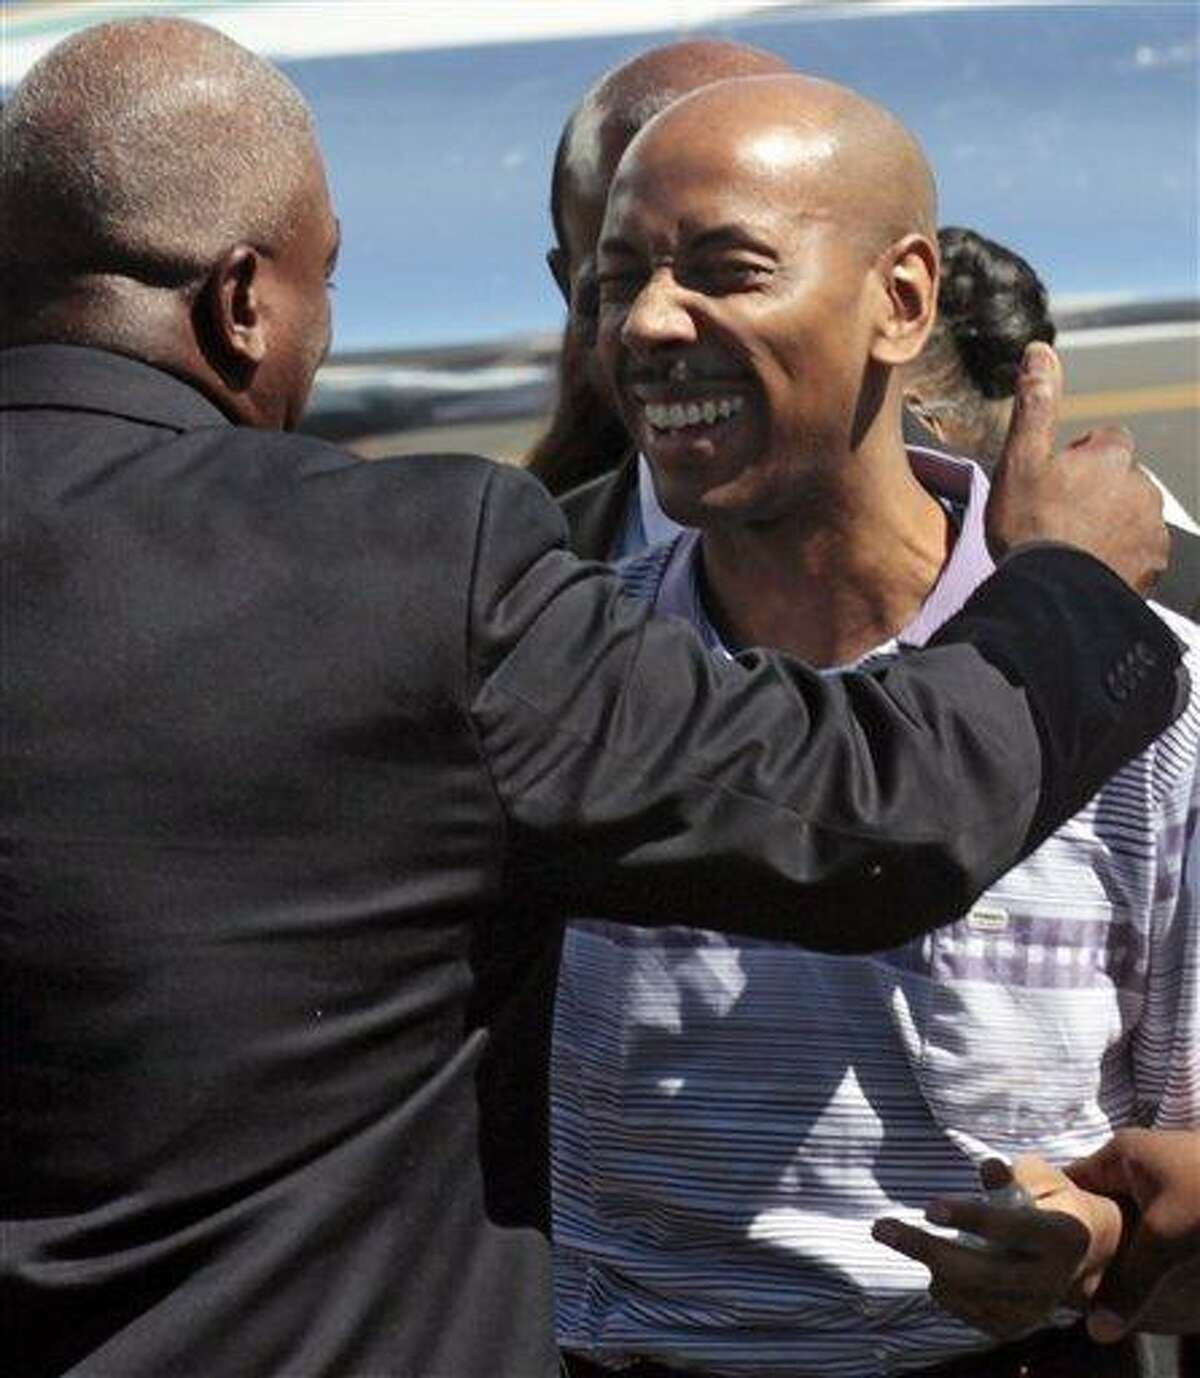 Aijalon Gomes is greeted by family members after arriving with former President Jimmy Carter at Logan International Airport in Boston, Aug. 27, 2010. Carter flew to the North Korean capital, Pyongyang, this week on a private mission to secure a pardon for the 31-year-old American who was detained in January after crossing into the country from China. (AP Photo/Winslow Townson)